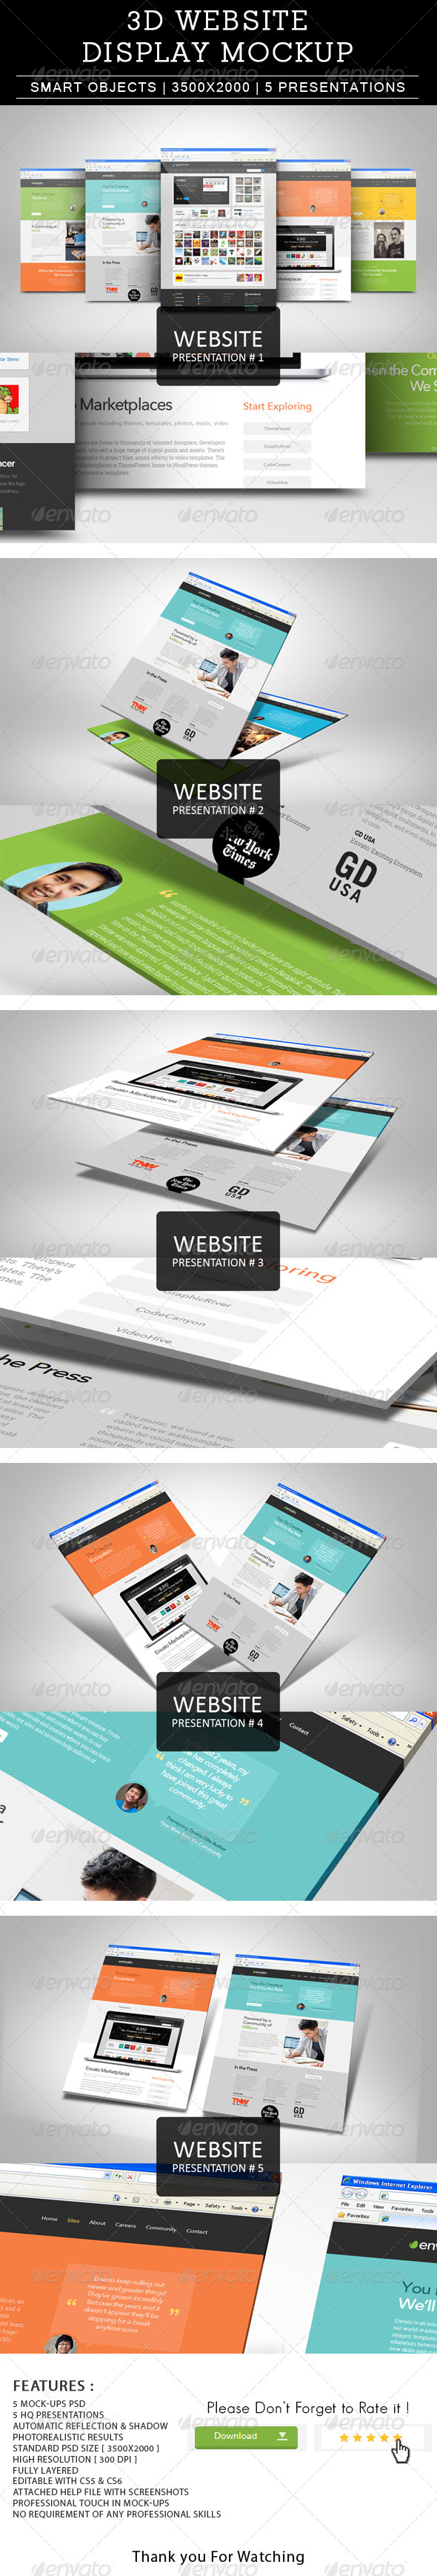 GraphicRiver 3D Website Presentation Display Mockup 6993513